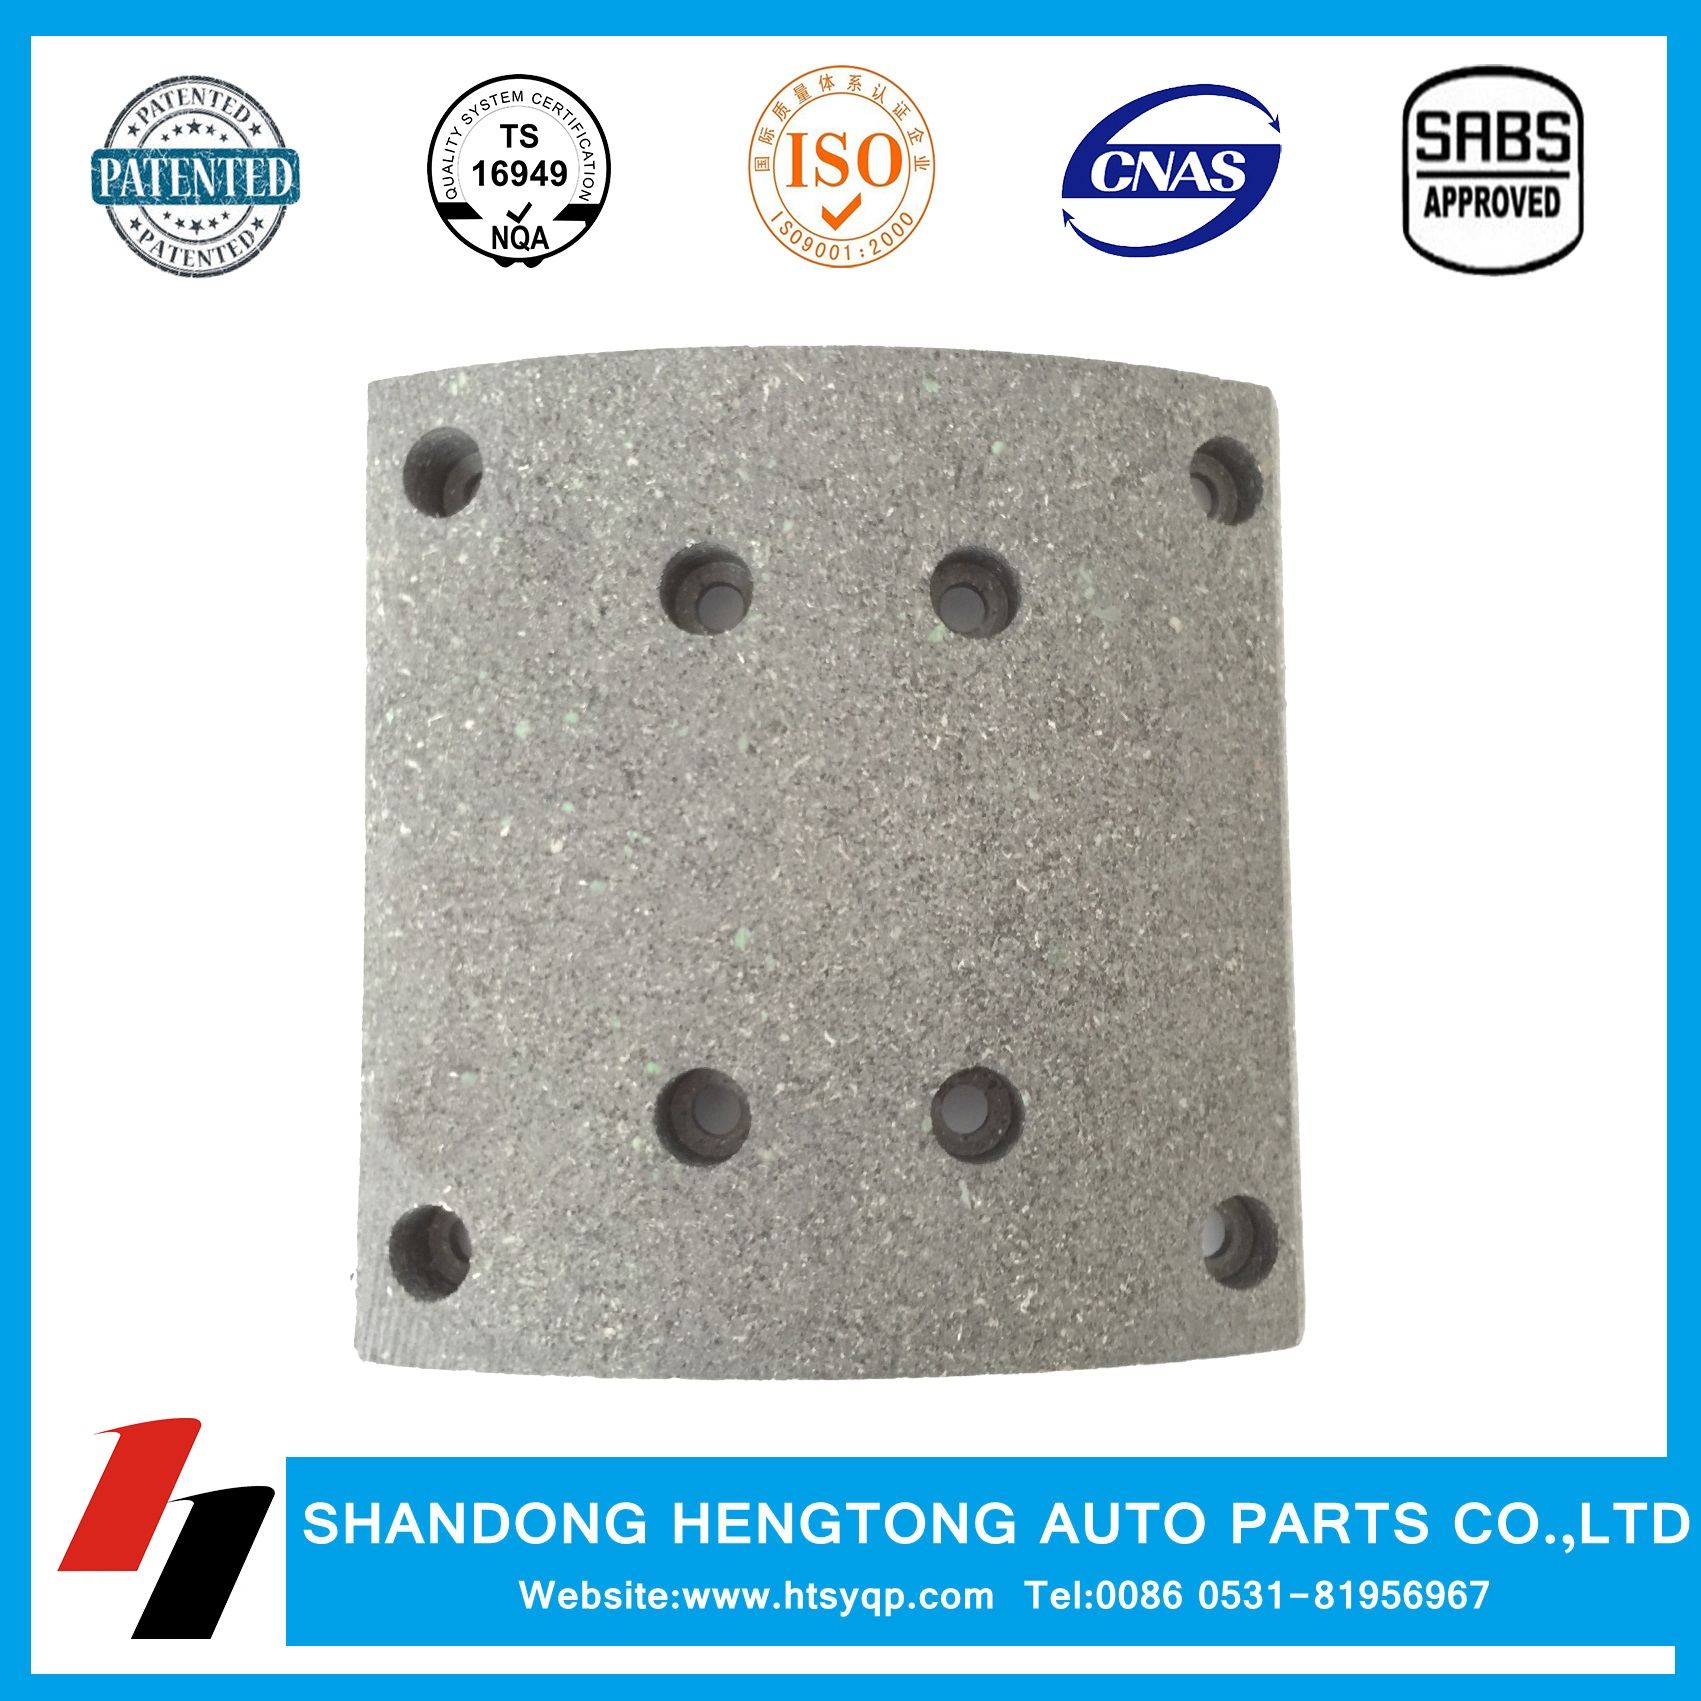 Semi-metal Brake Lining WVA19487 for MAN/Mercedes/Renault/Steyr